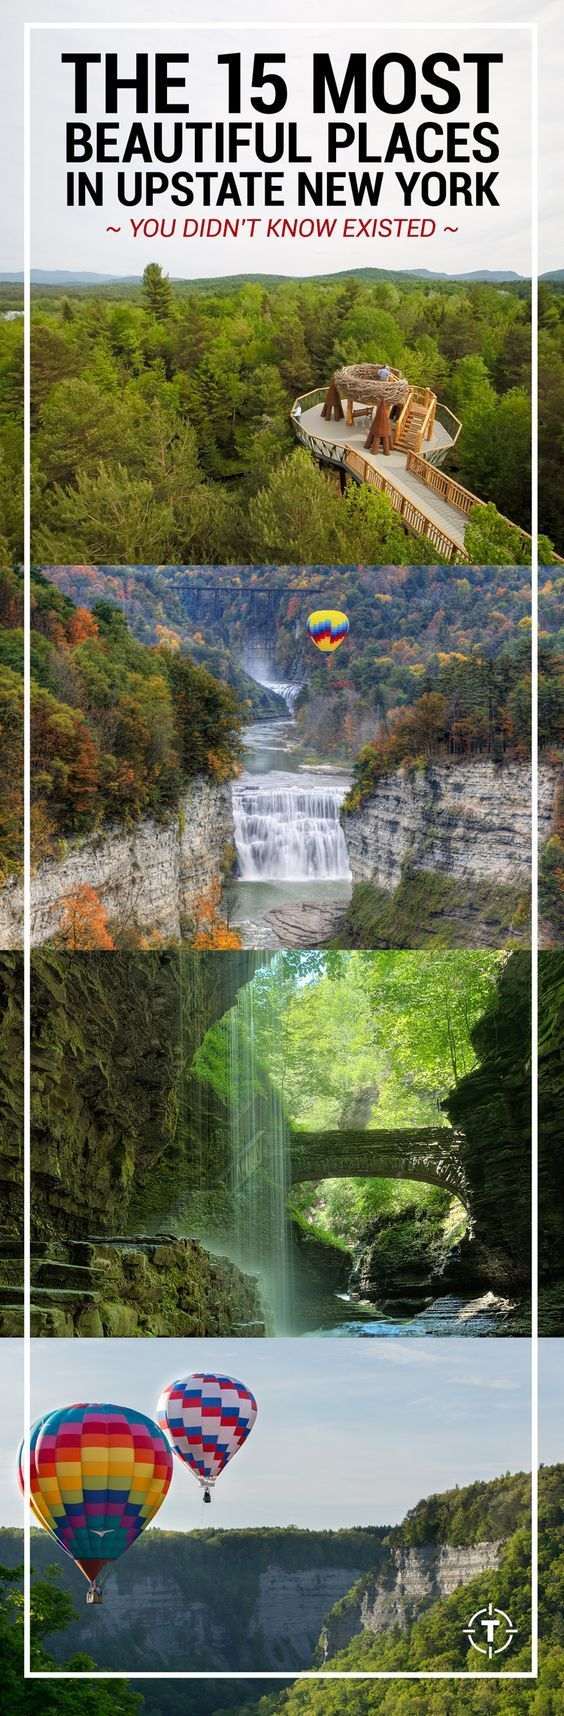 upstate new york travel guide